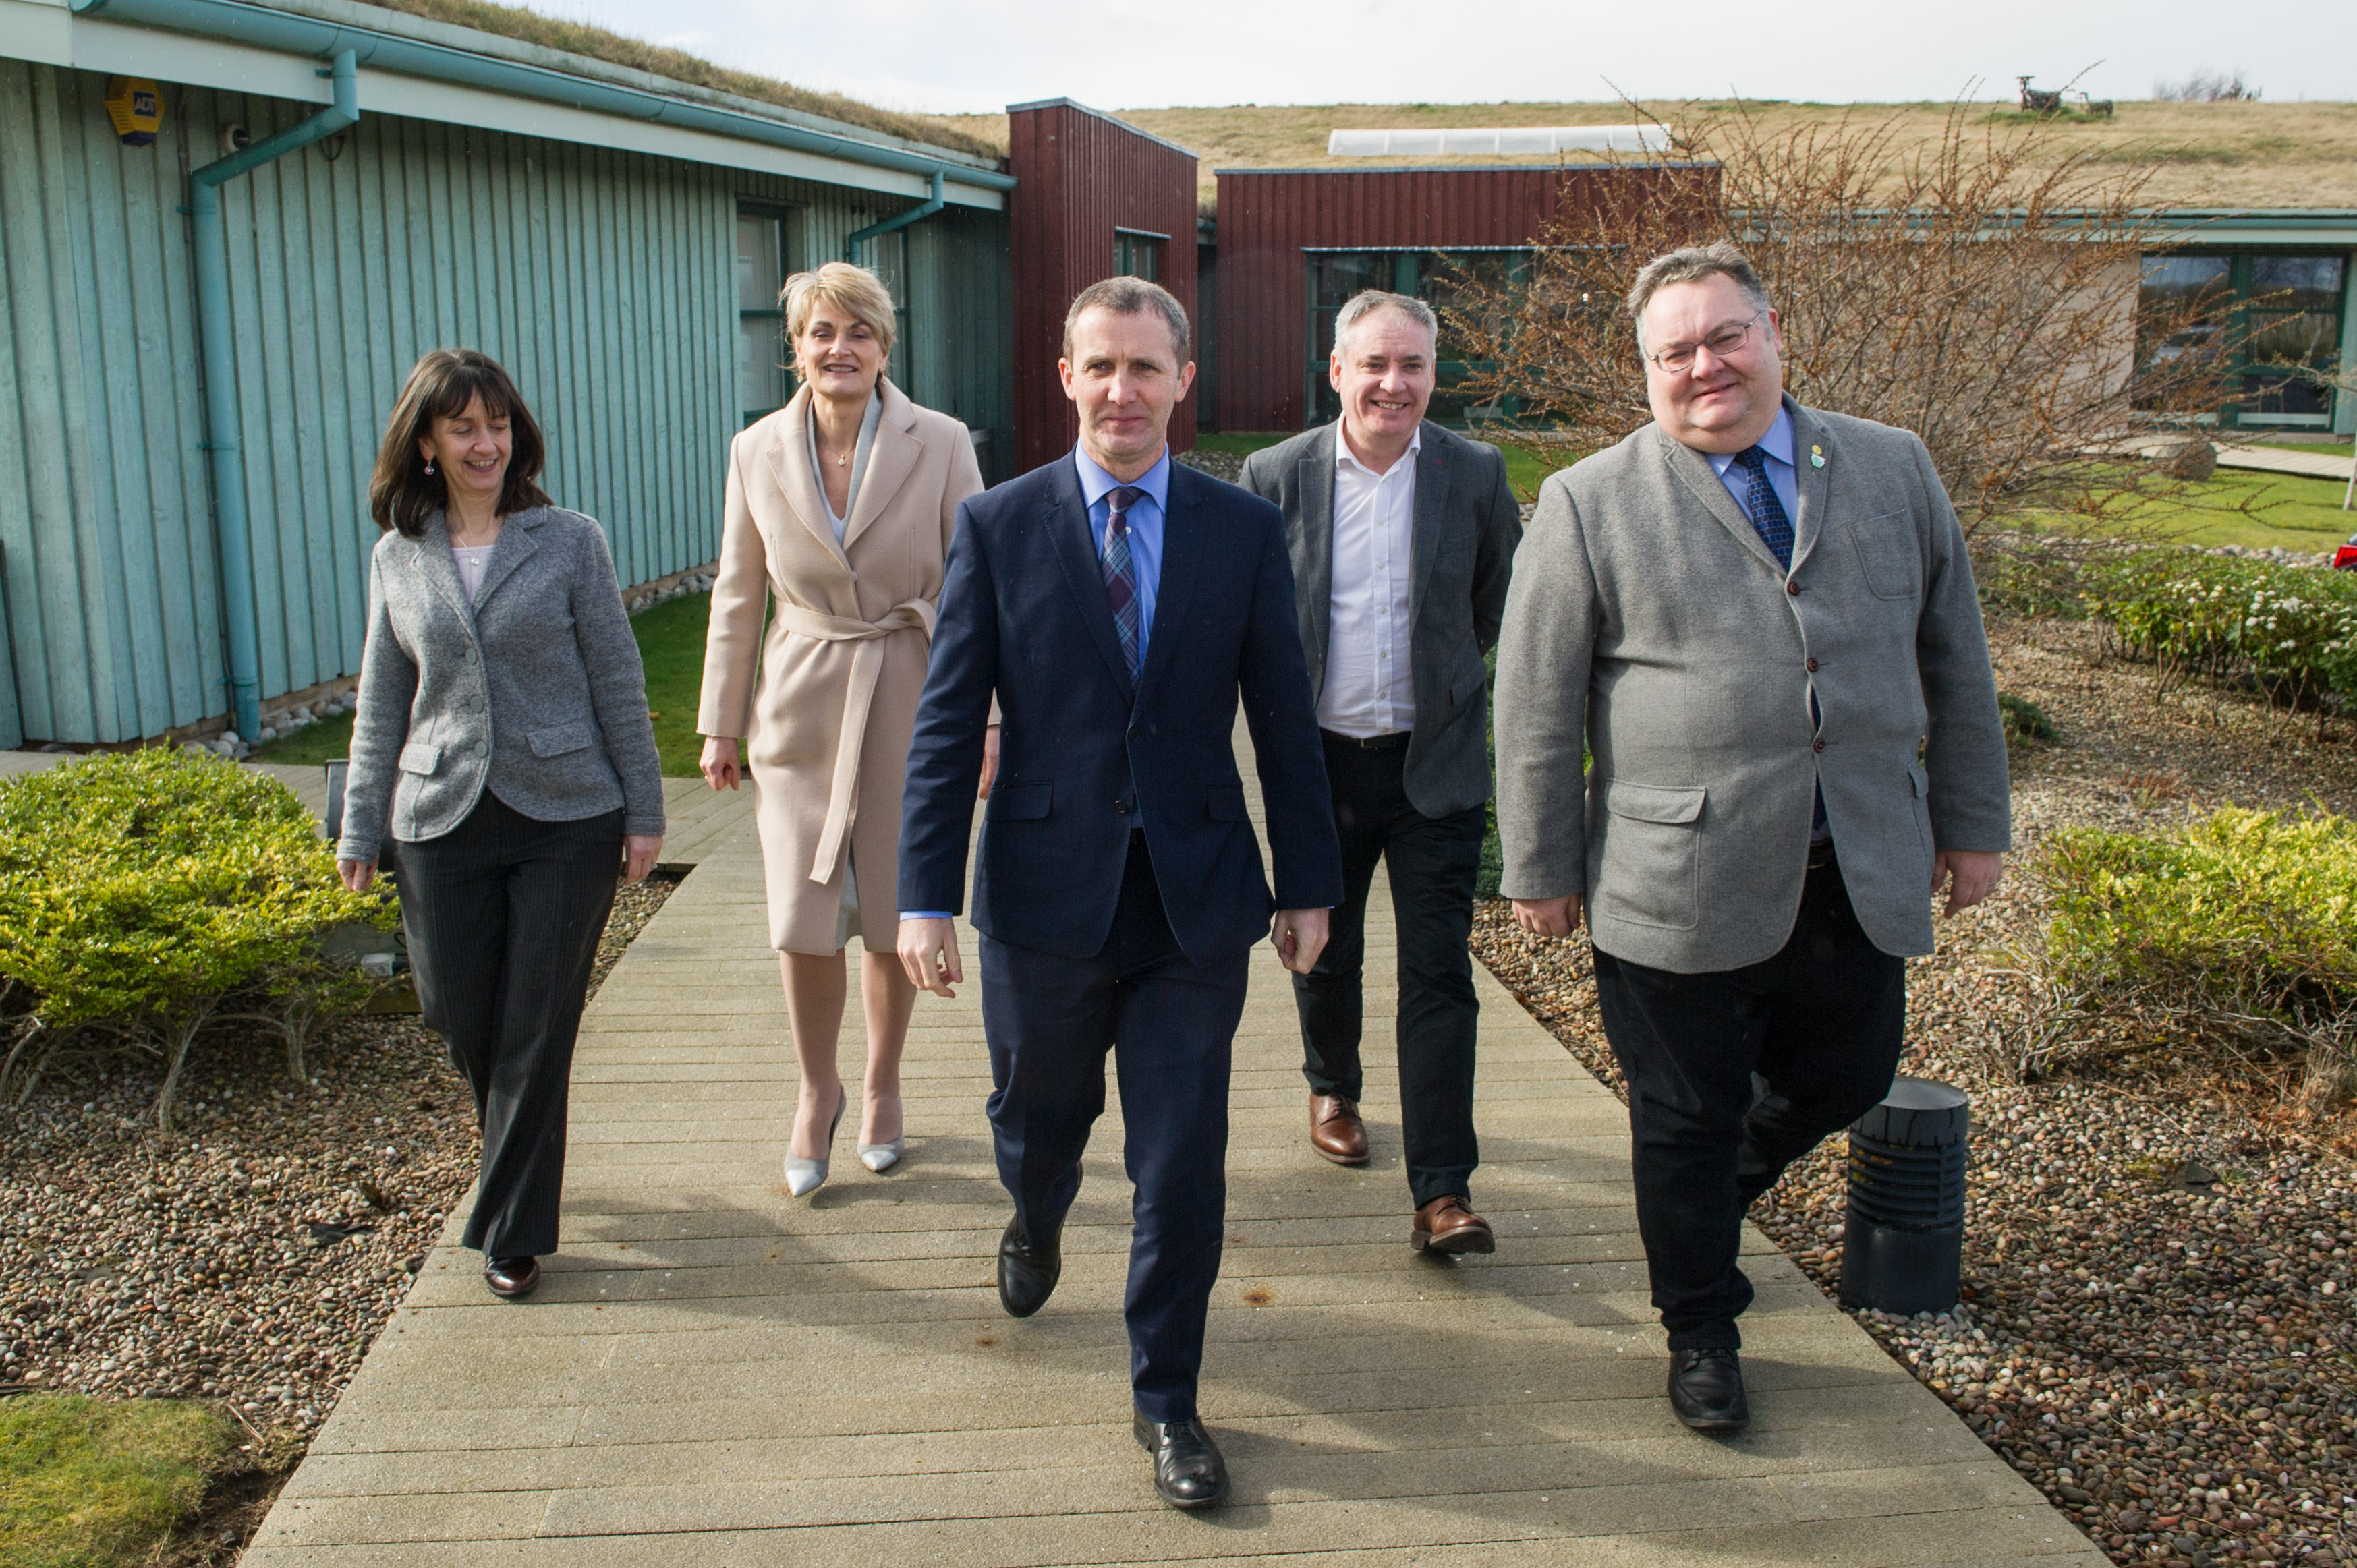 The Scottish Government's minister for transport, infrastructure and connectivity, Michael Matheson, has visited Moray to hear progress on a growth deal. Pictured: Donna Chisholm, HIE's Moray manager, Rhona Gunn, Moray Council's economic development director, Michael Matheson, Moray MSP Richard Lochhead, Moray Council leader Graham Leadbitter.